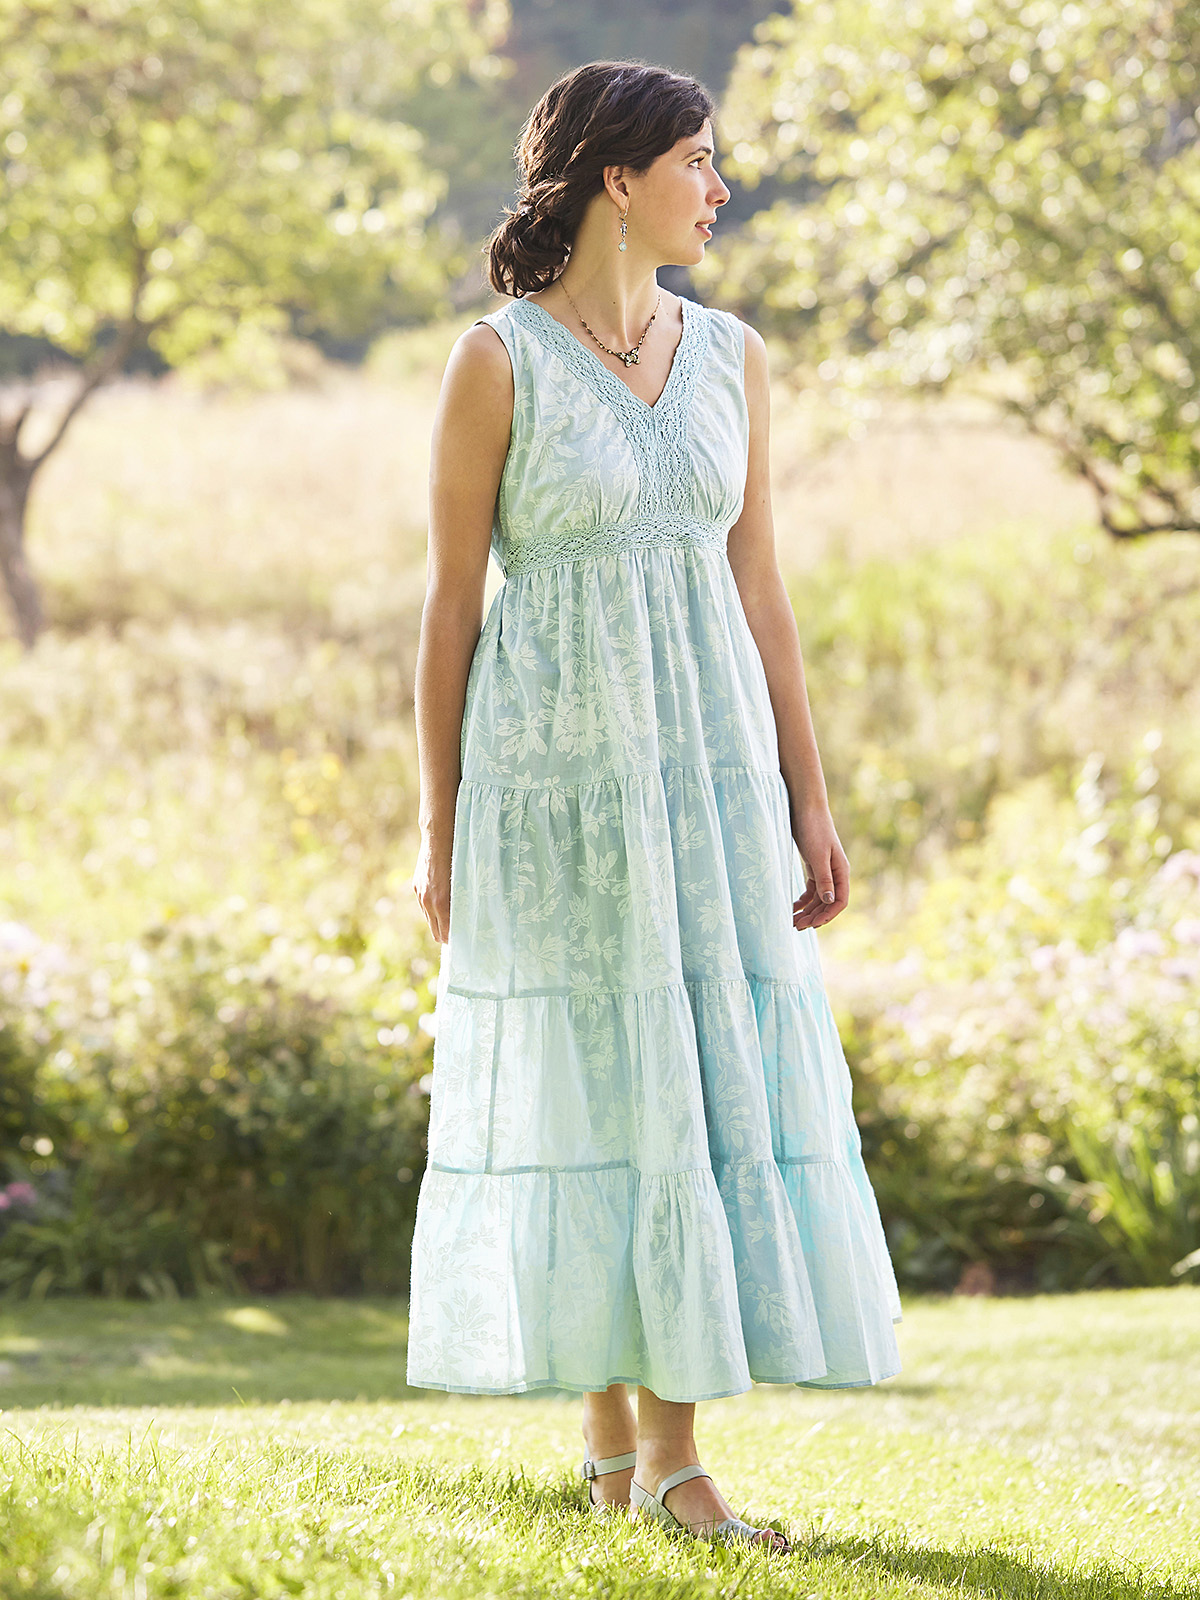 Aquamarine Hostess Dress